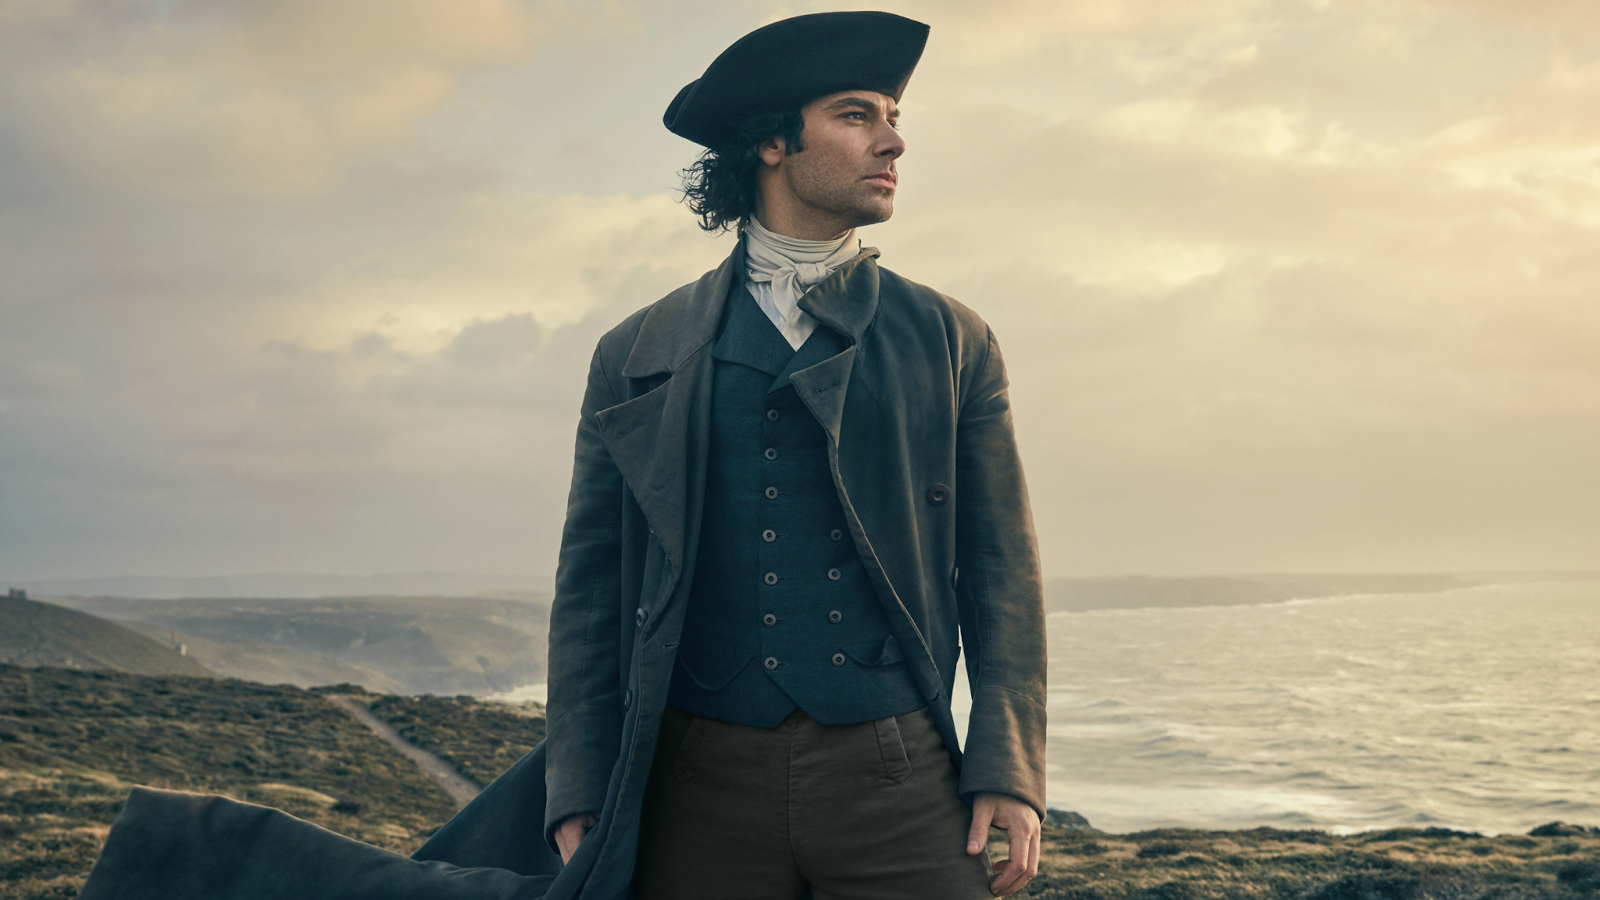 Ross Poldark in promotional art for 'Poldark' Season 2